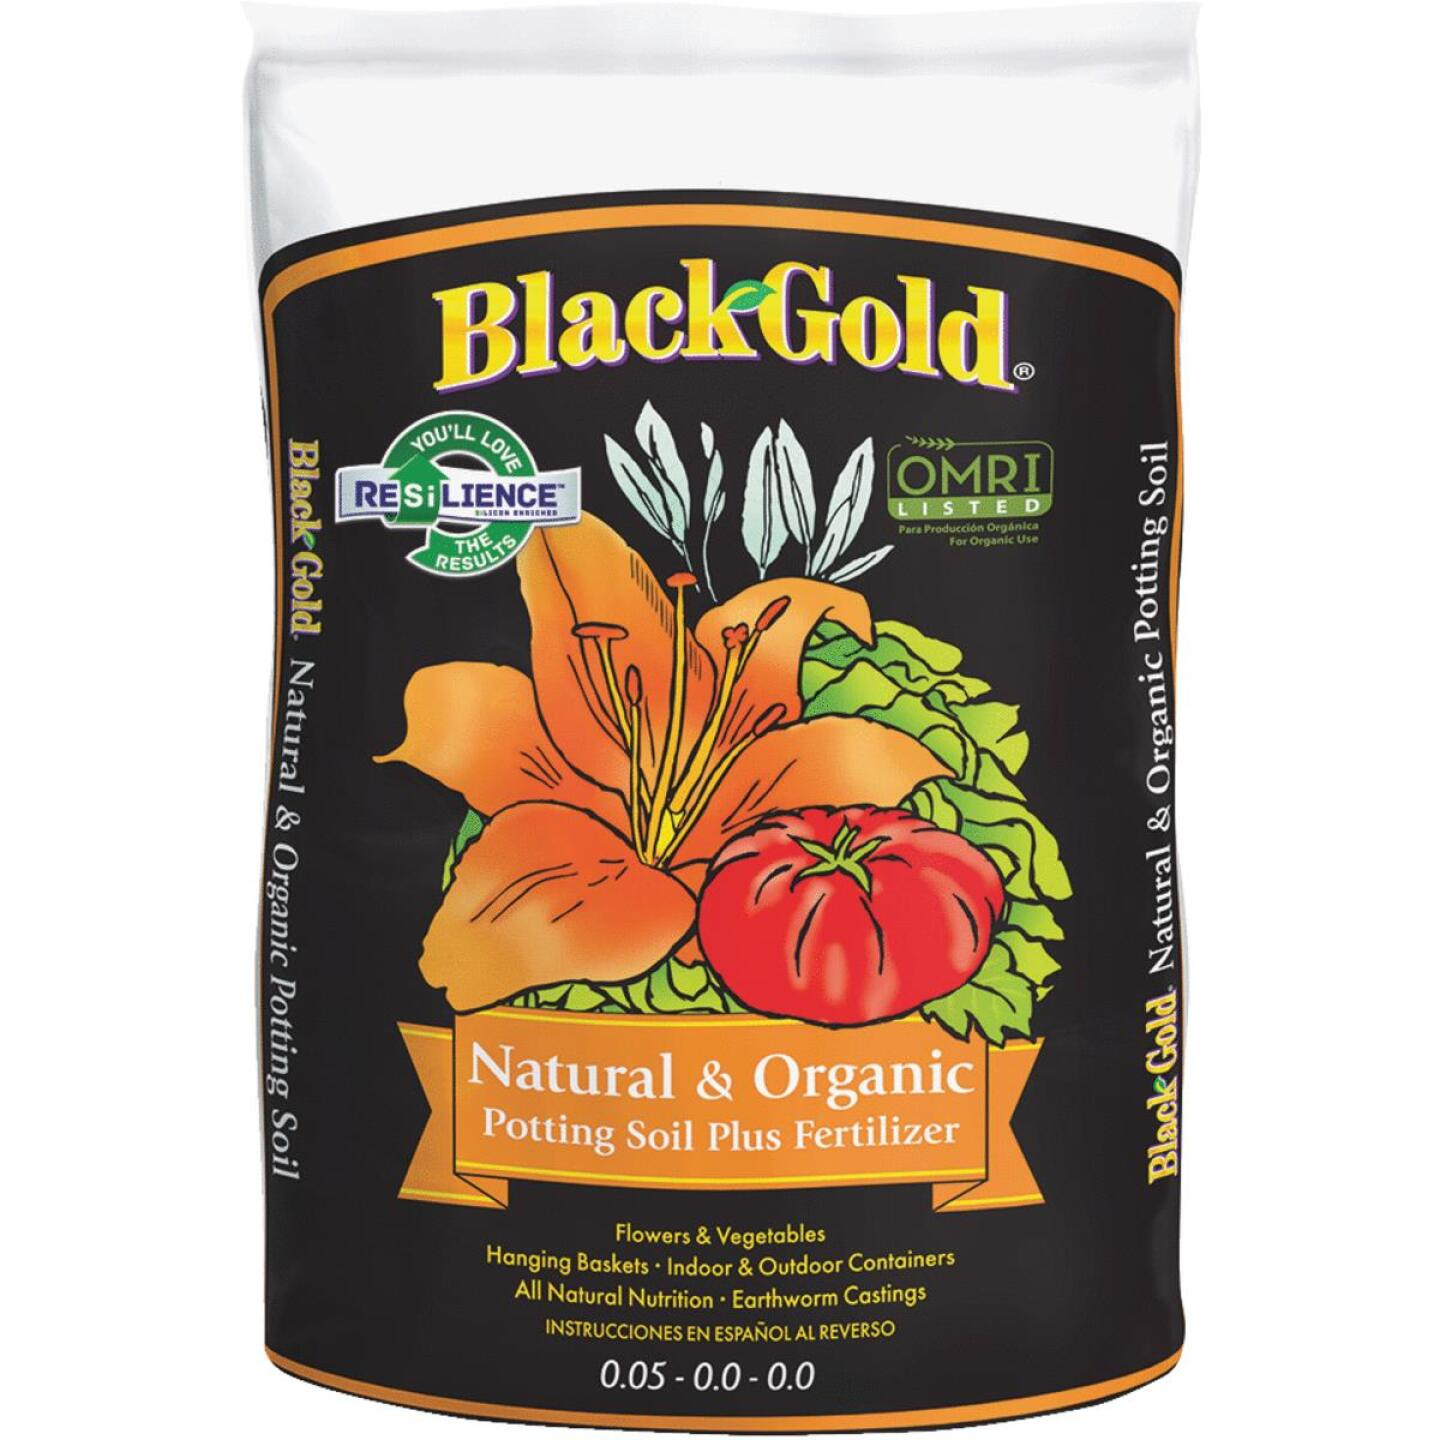 Black Gold 1.5 Cu. Ft. All Purpose Natural & Organic Potting Soil Image 1